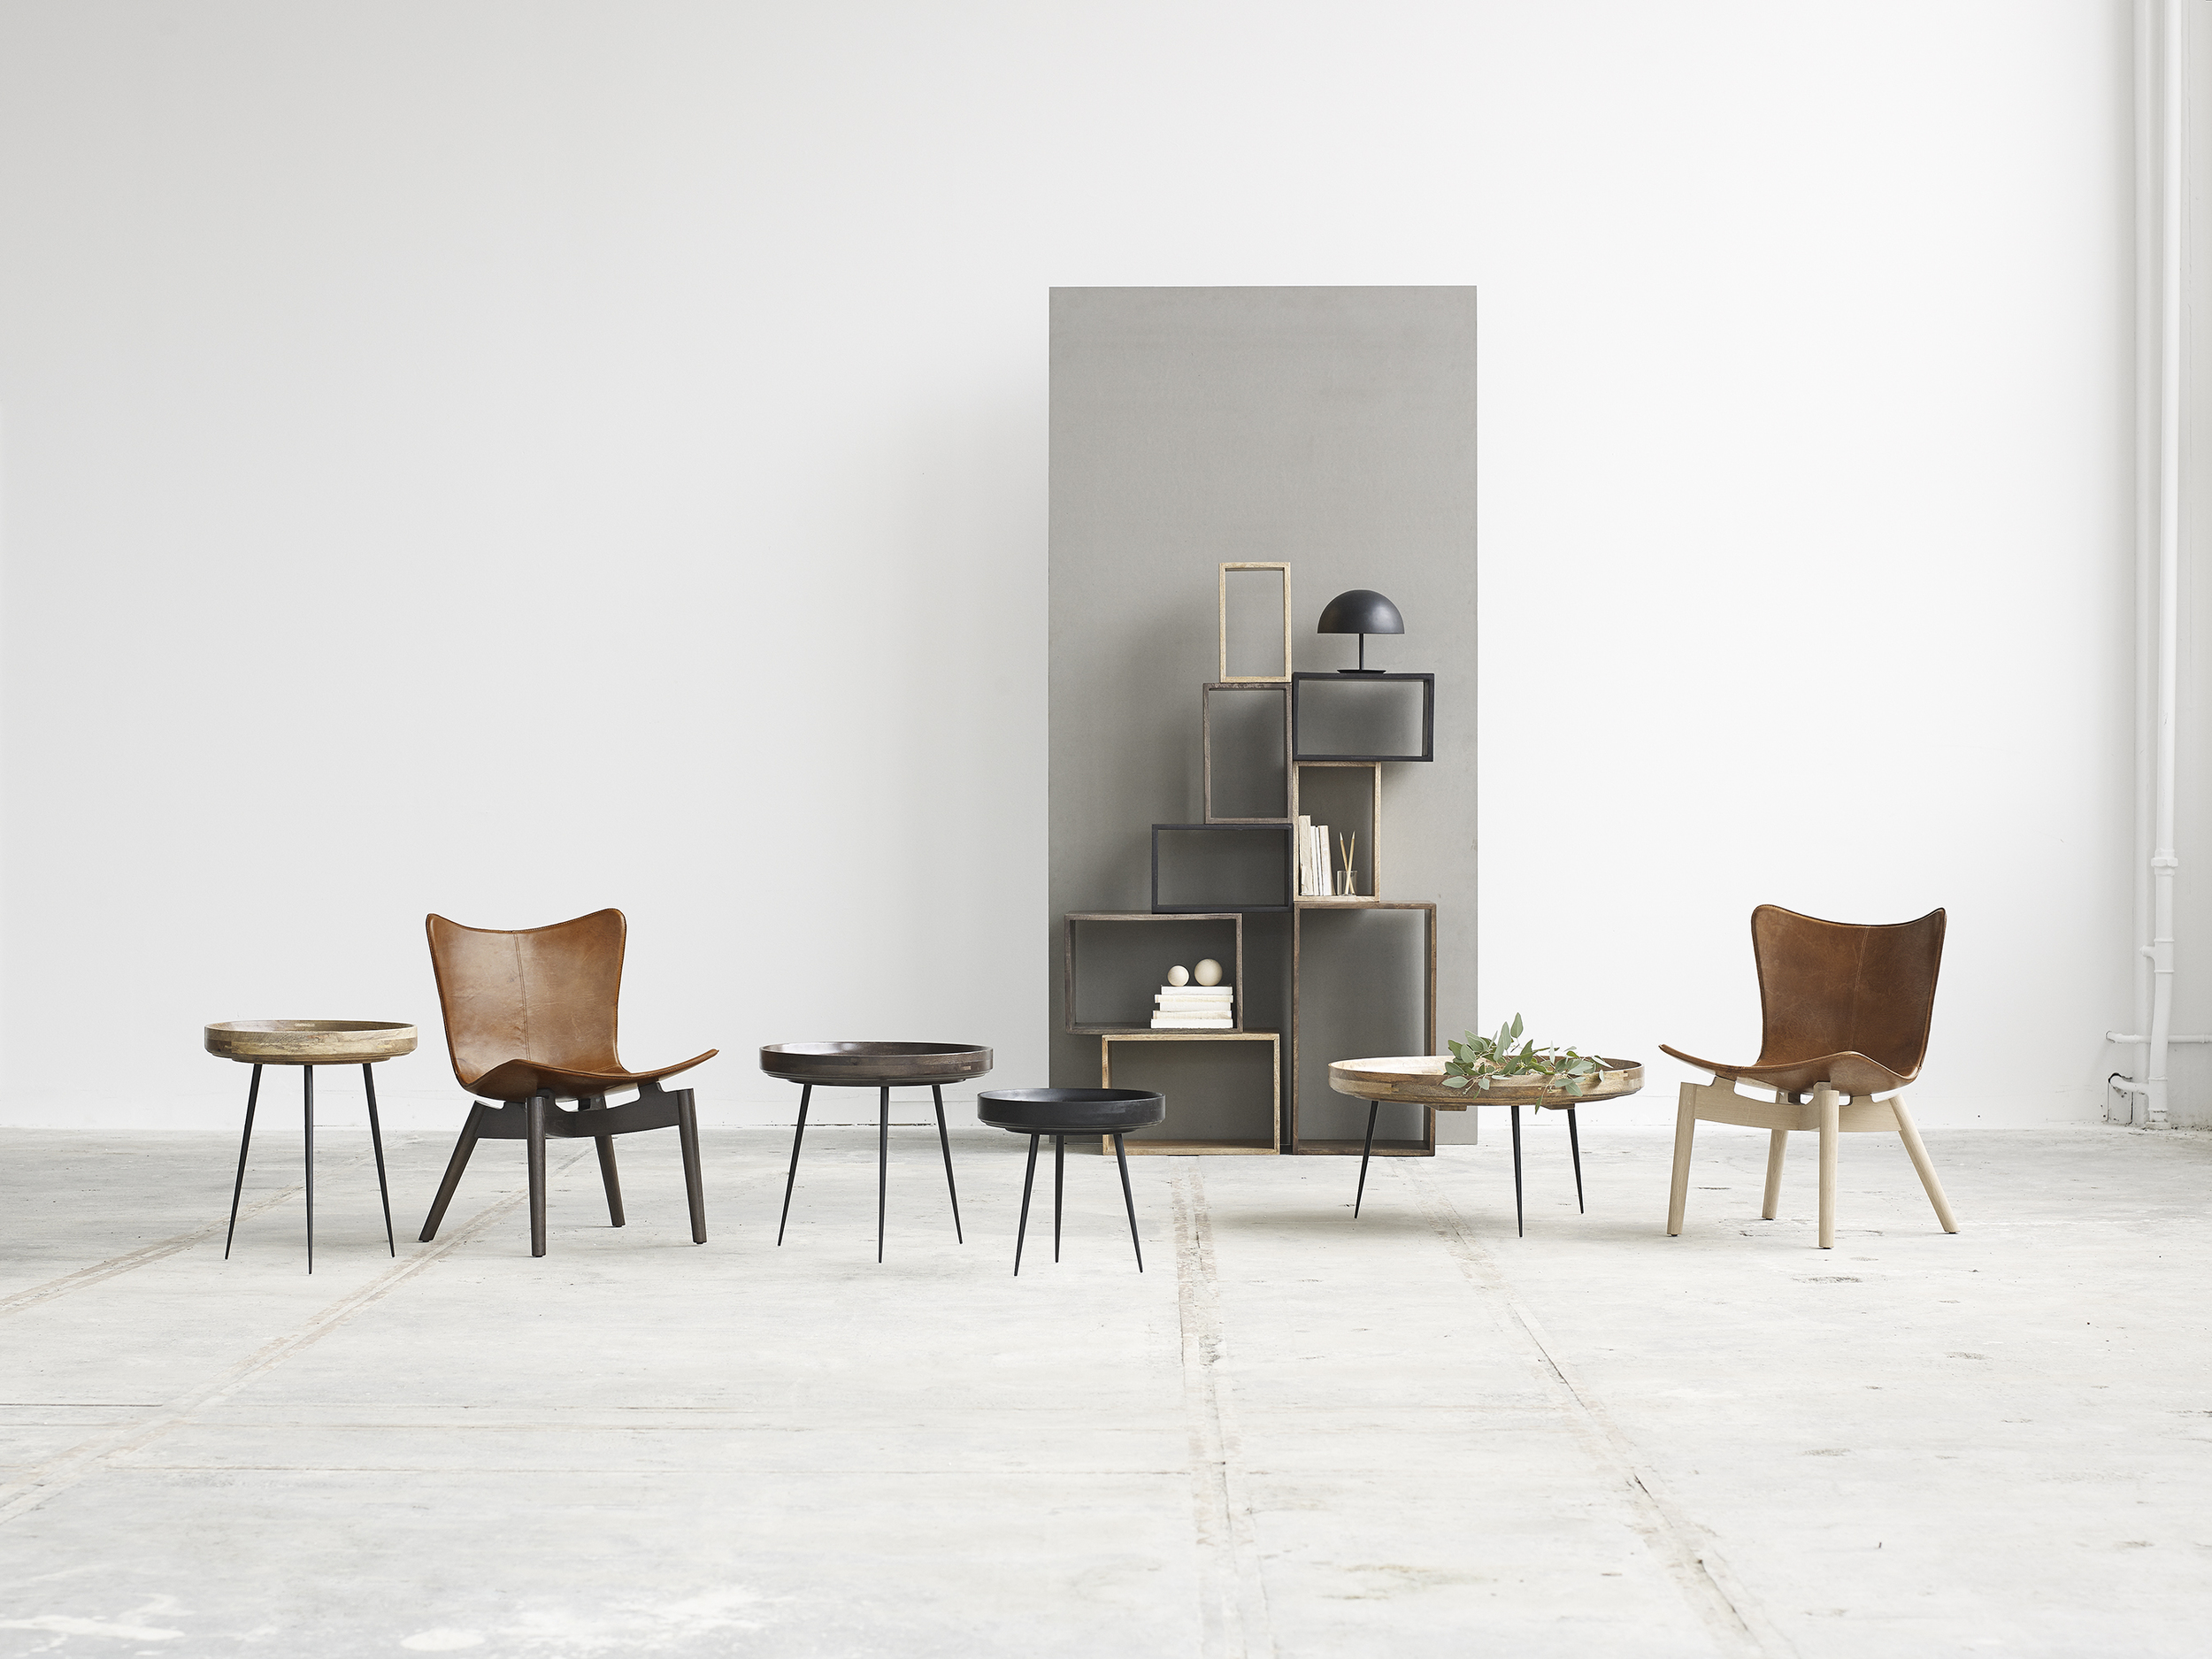 Mater Design Bowl Tables and Shell Lounge chair